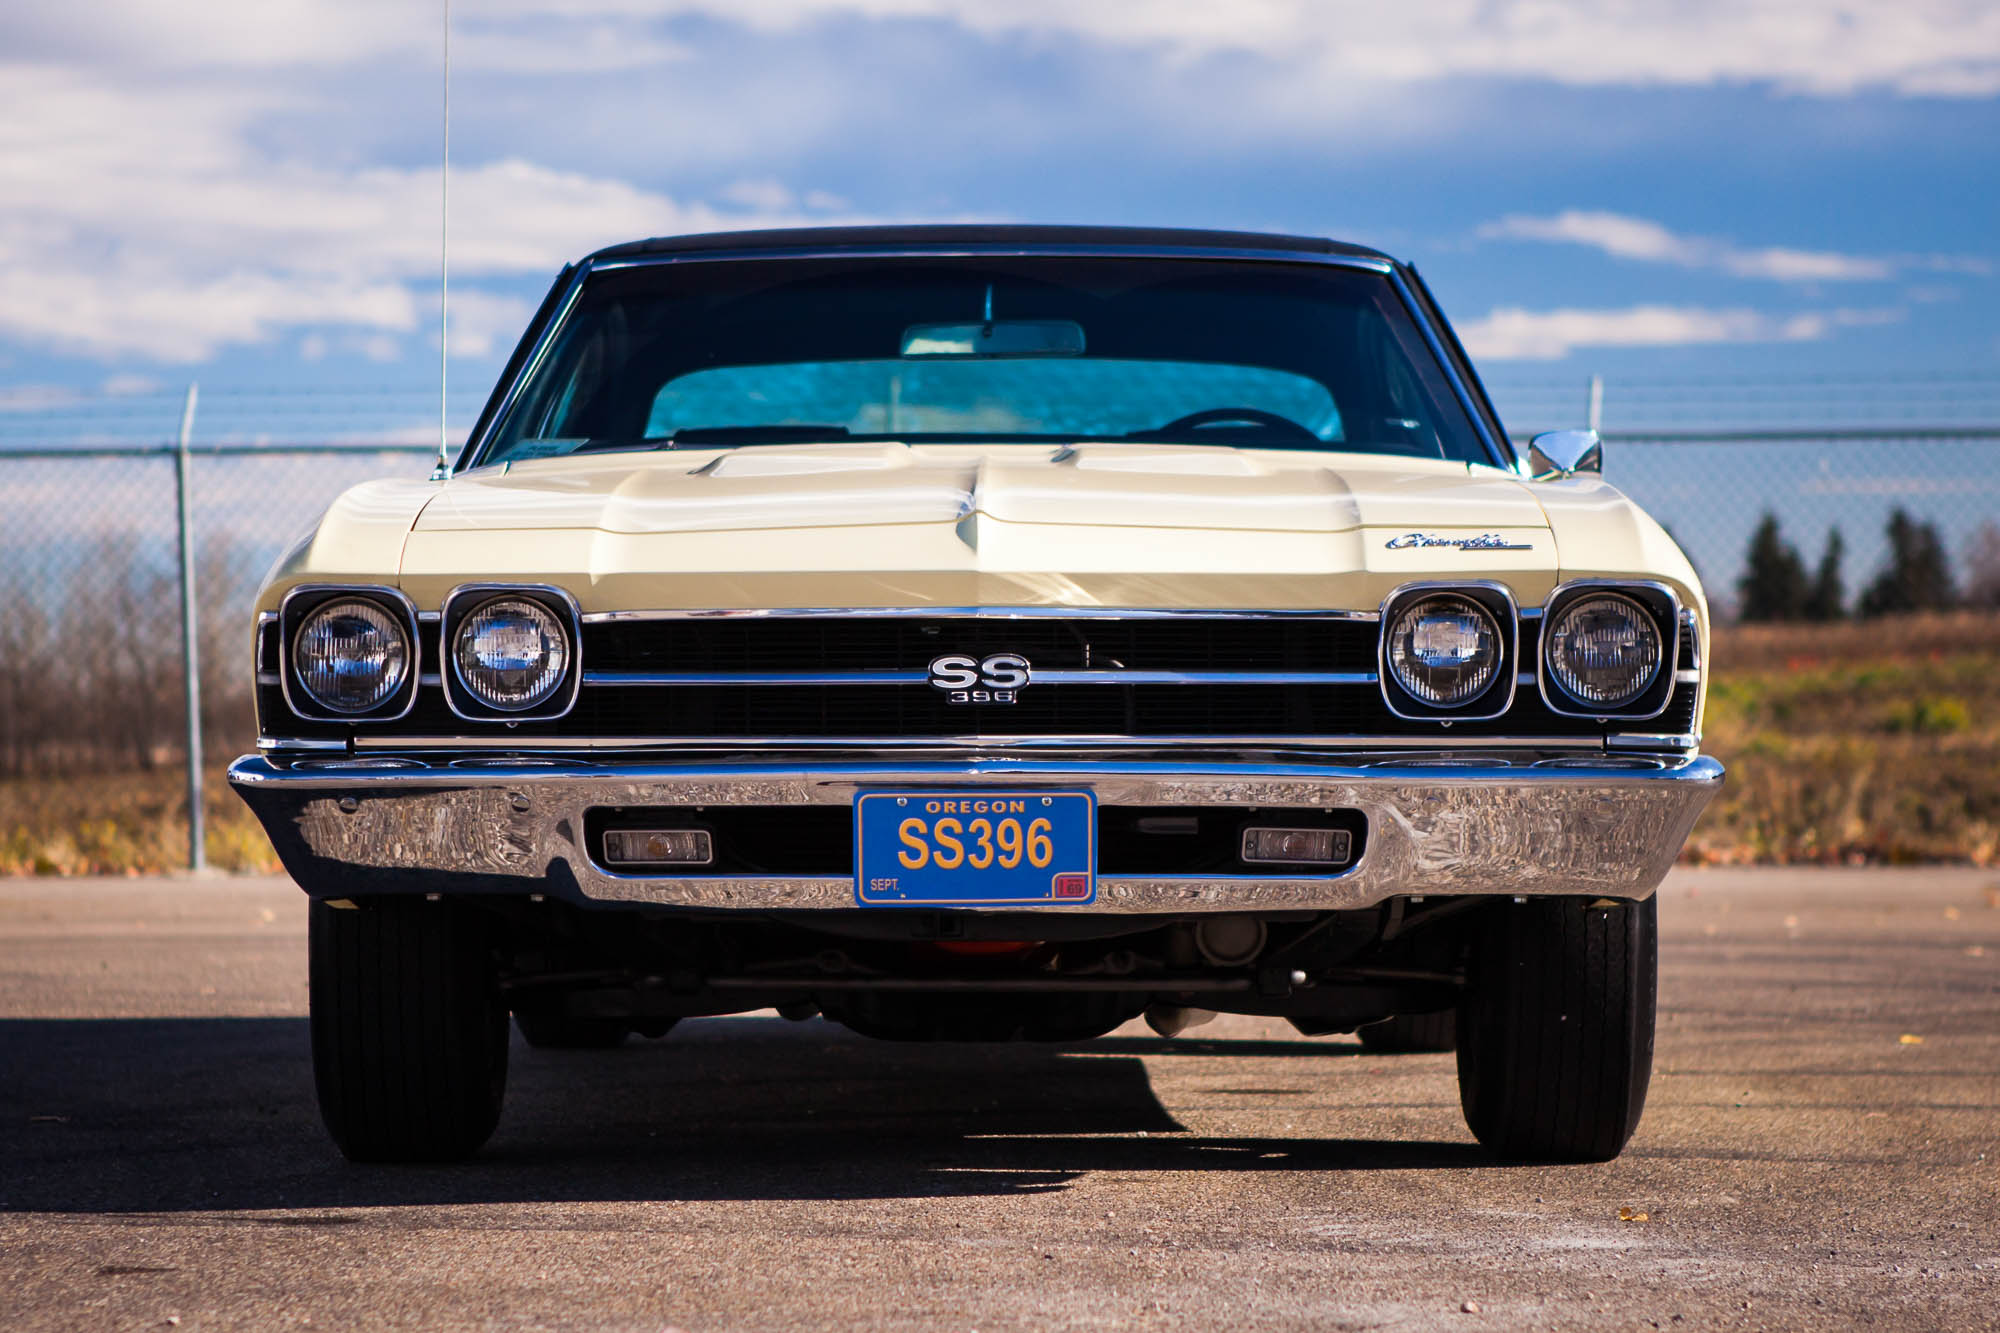 1969 Chevelle Ss 369 Sold The Iron Garage